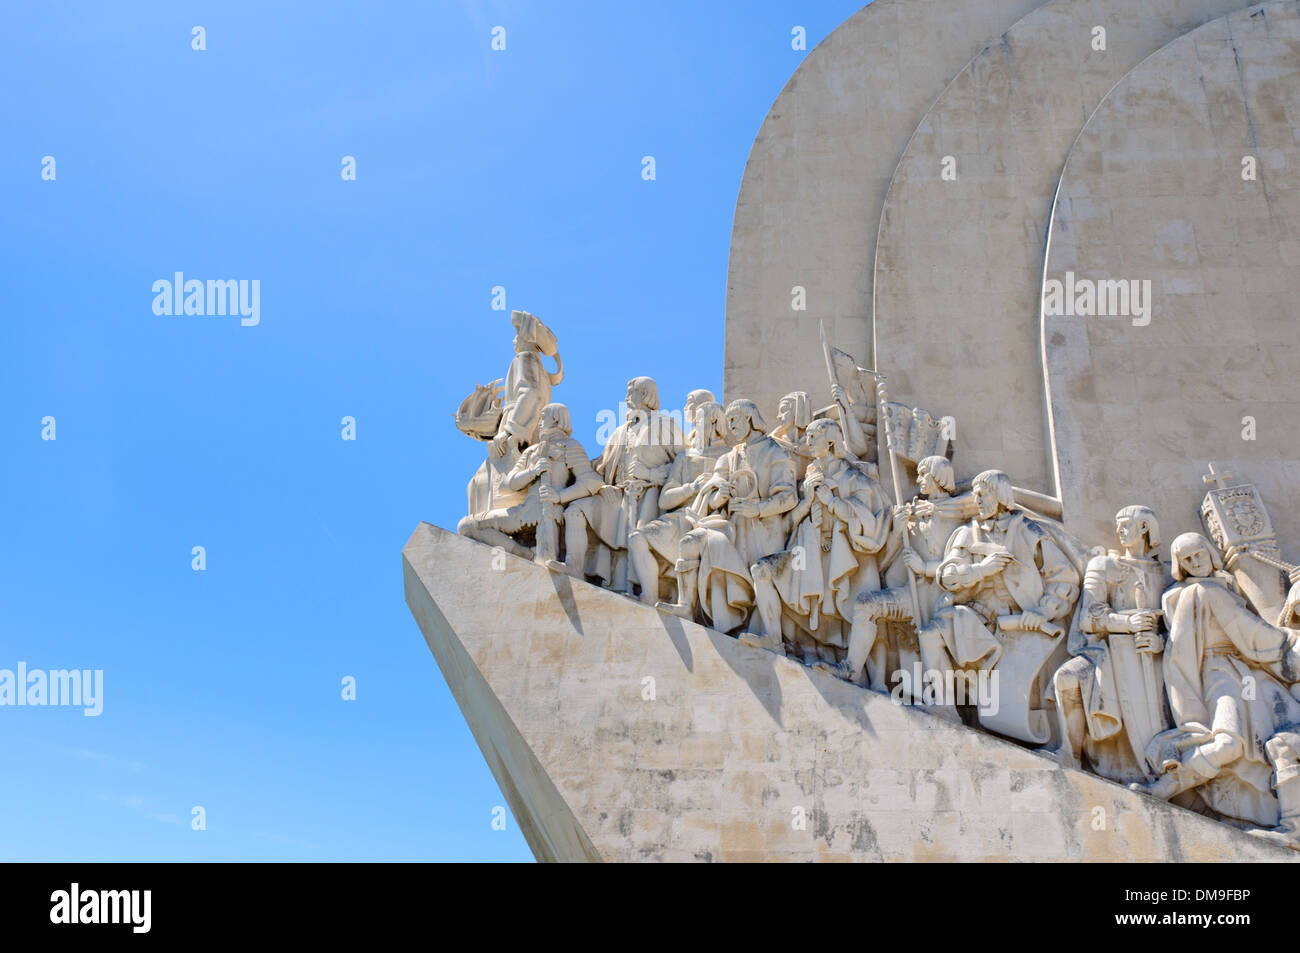 Monument to the Discoveries, Padrão dos Descobrimentos, Lisbon, Portugal, Europe - Stock Image